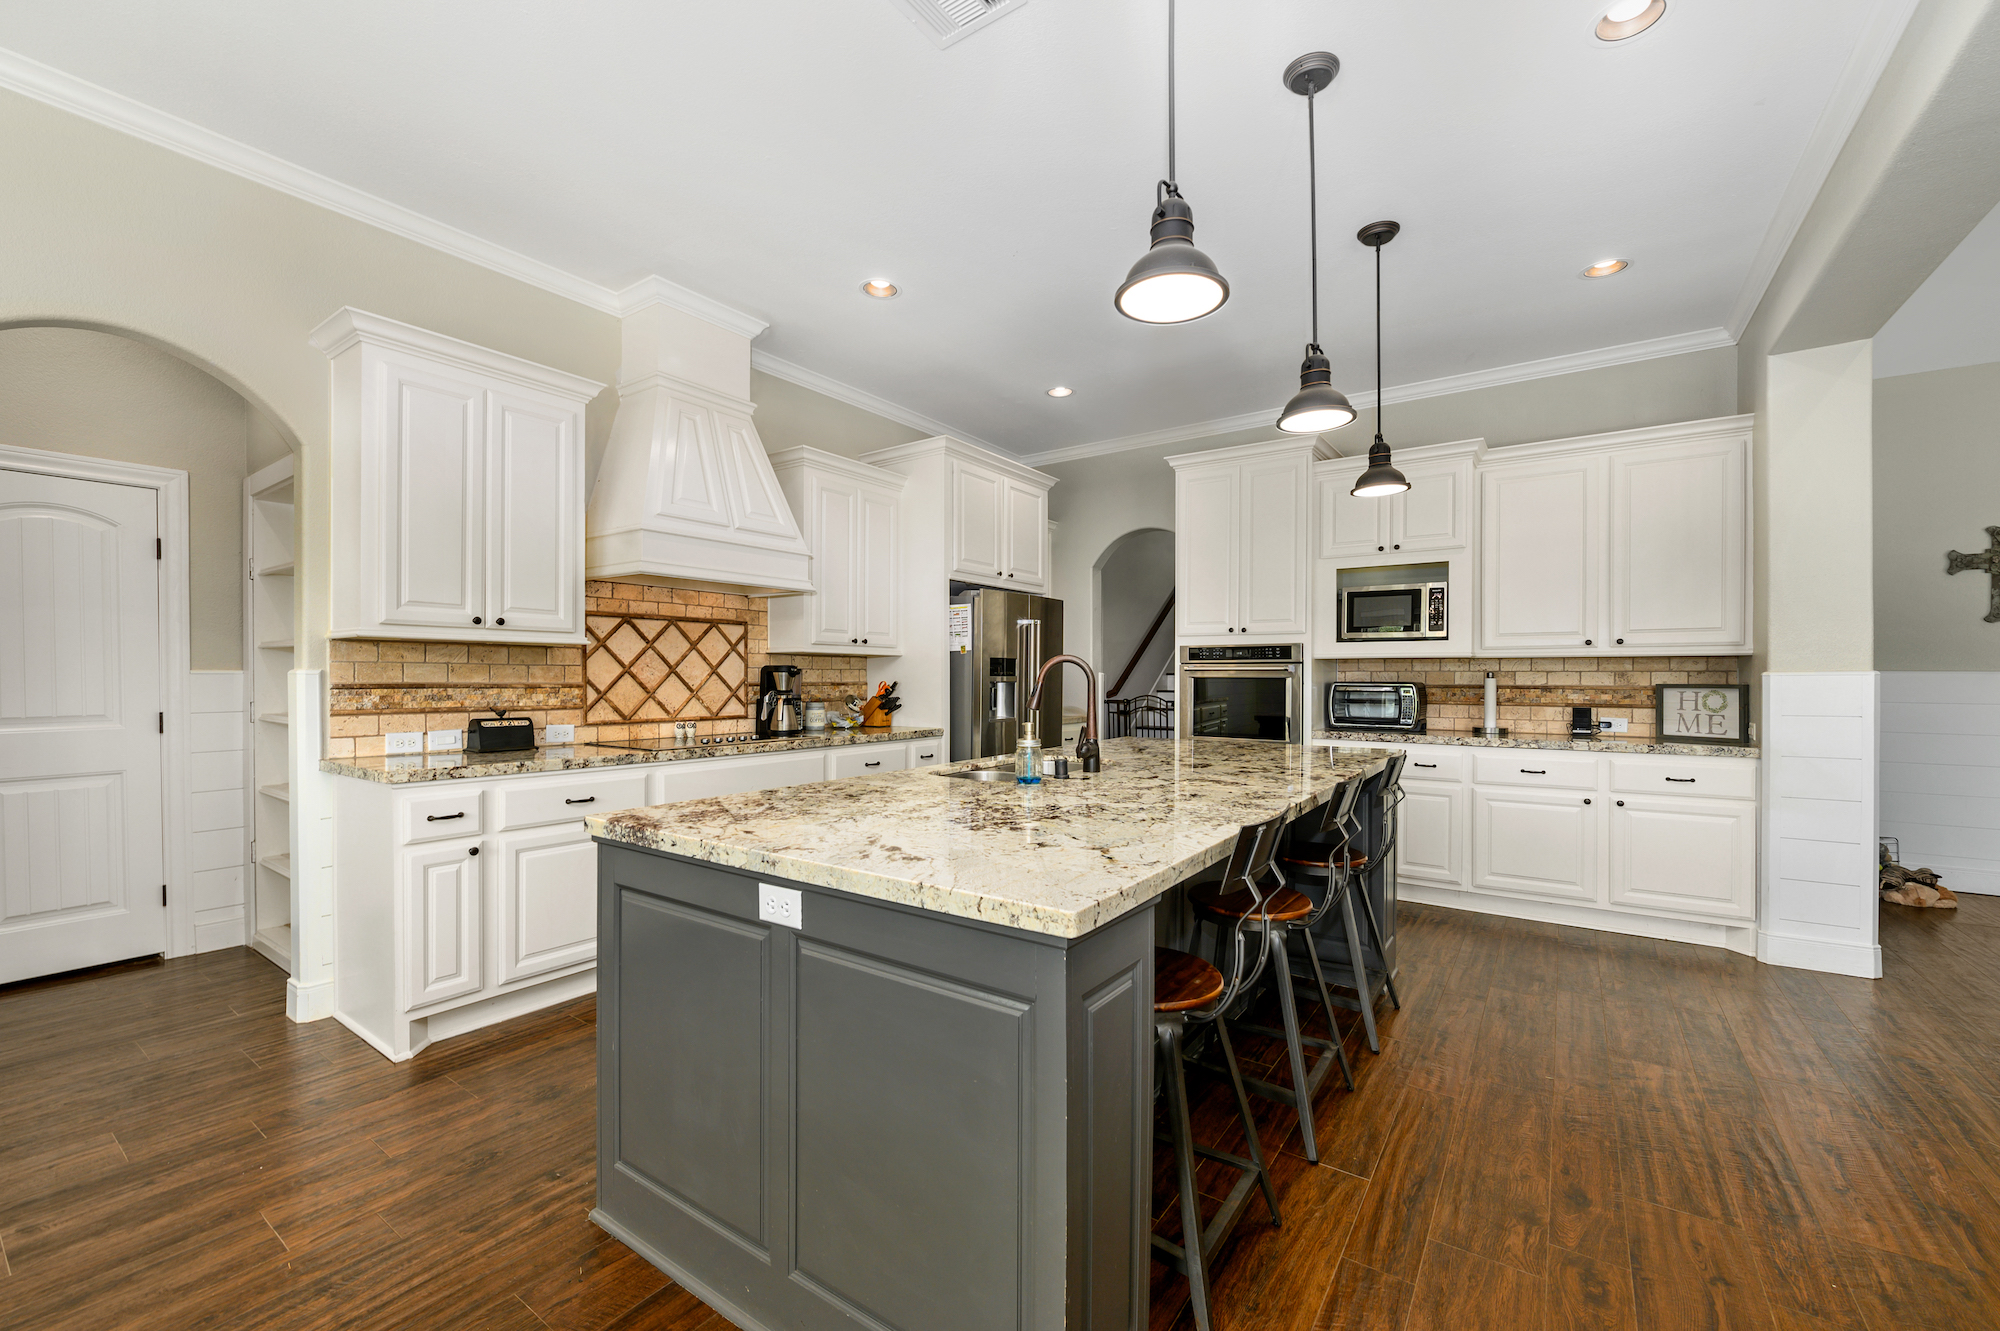 Custom Country Home with Acreage in Sealy - Image 23 of 46